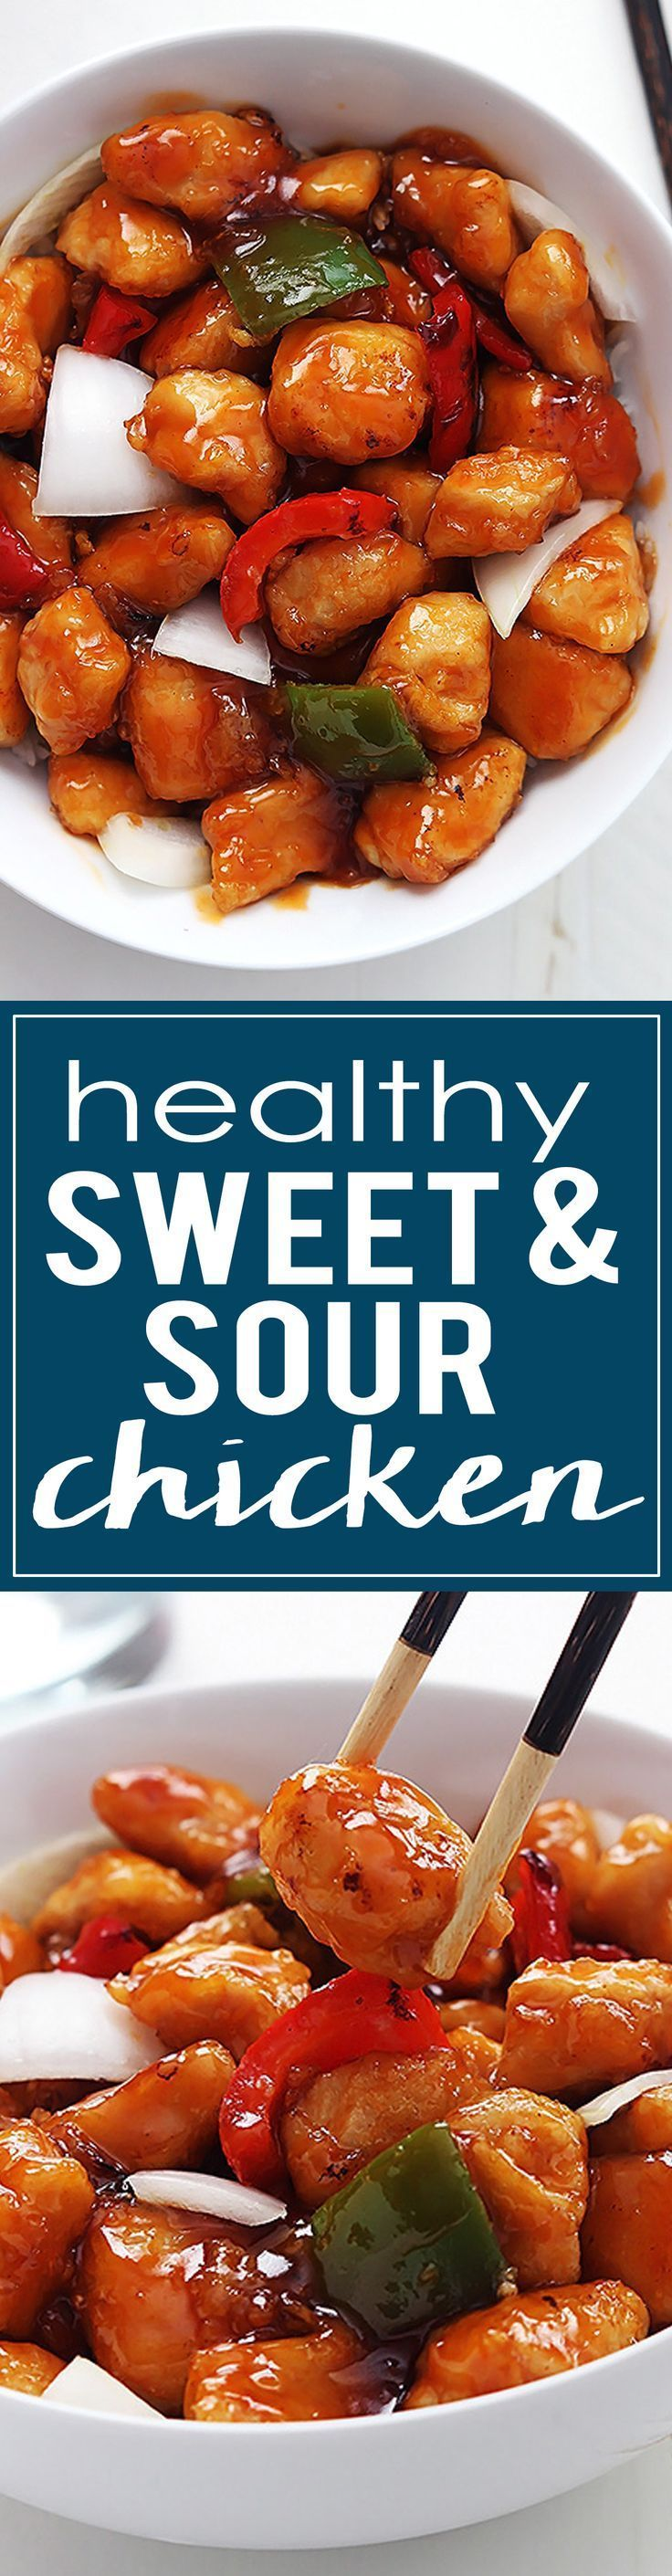 This Healthy Sweet & Sour Chicken is NOT deep fried and still has that crispy texture and amazing flavor you love!